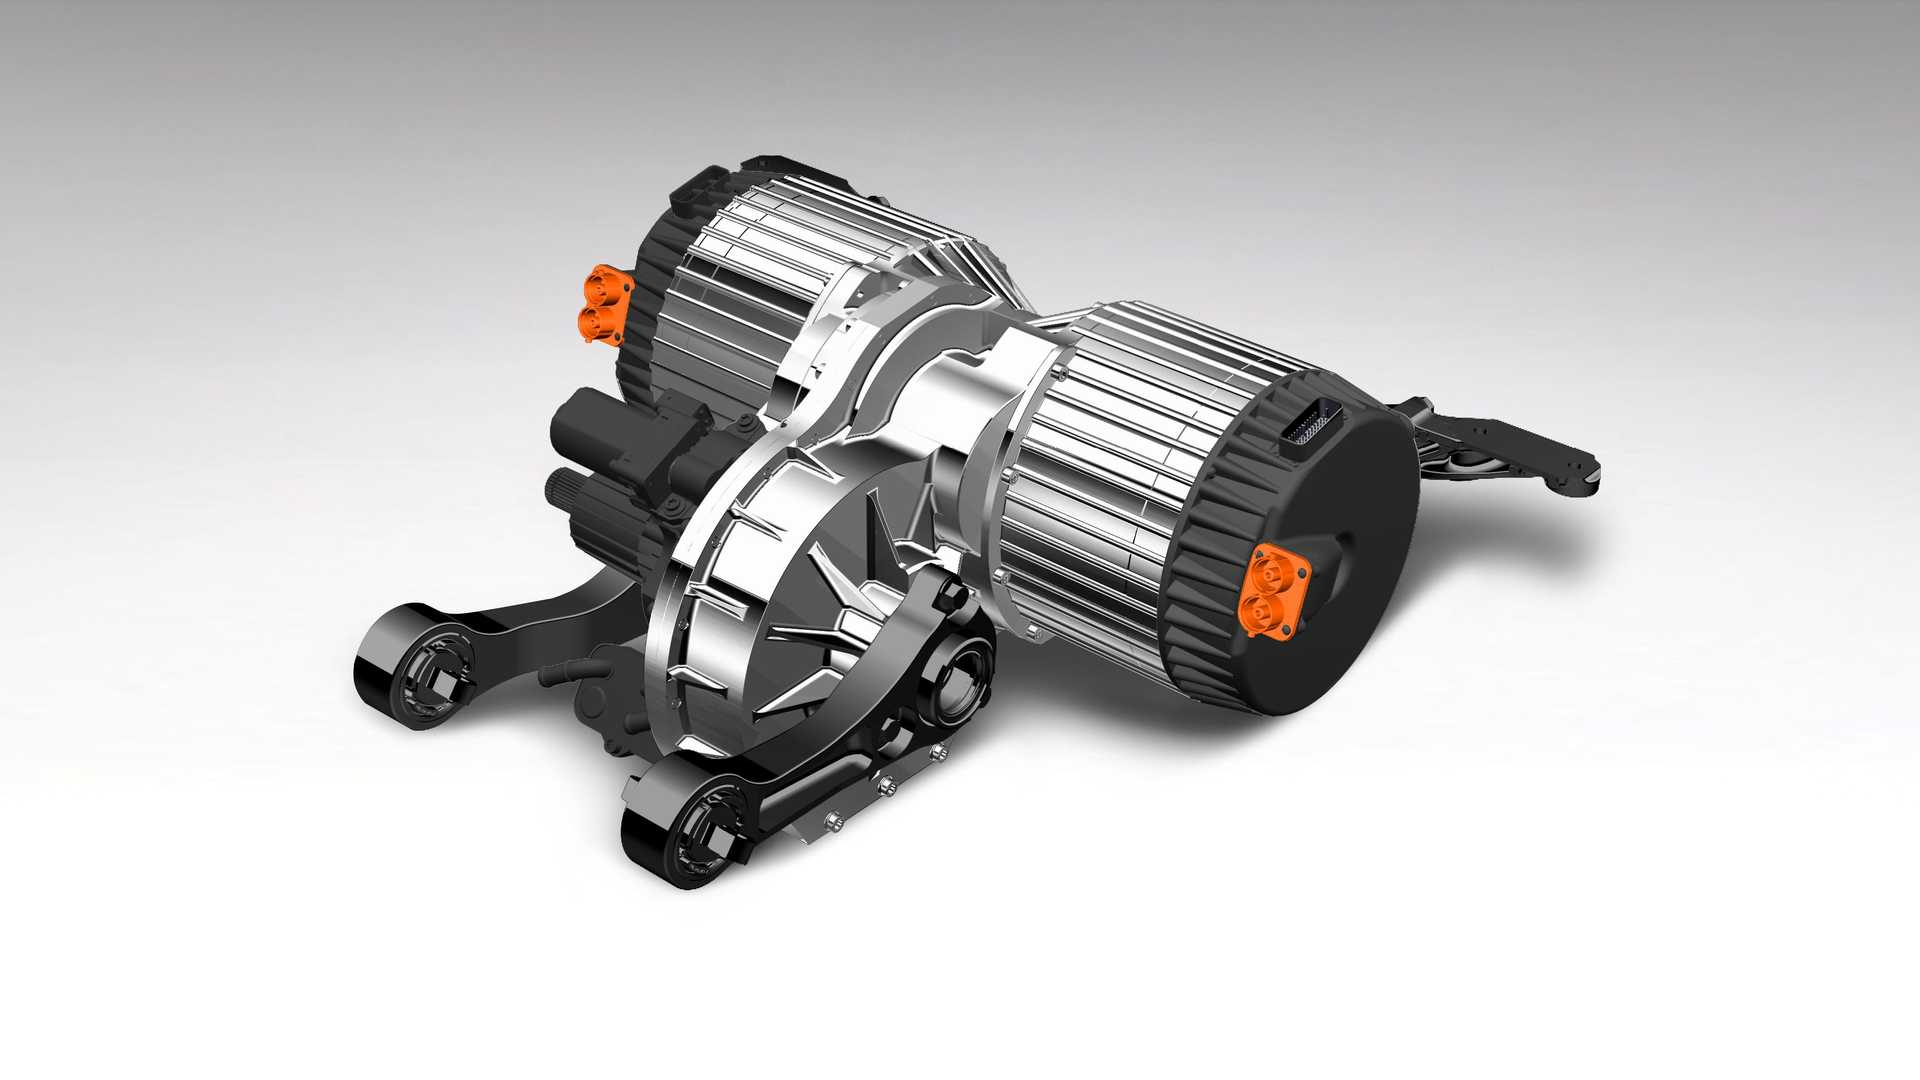 Bentley e-axle electric powertrains could be EV breakthrough